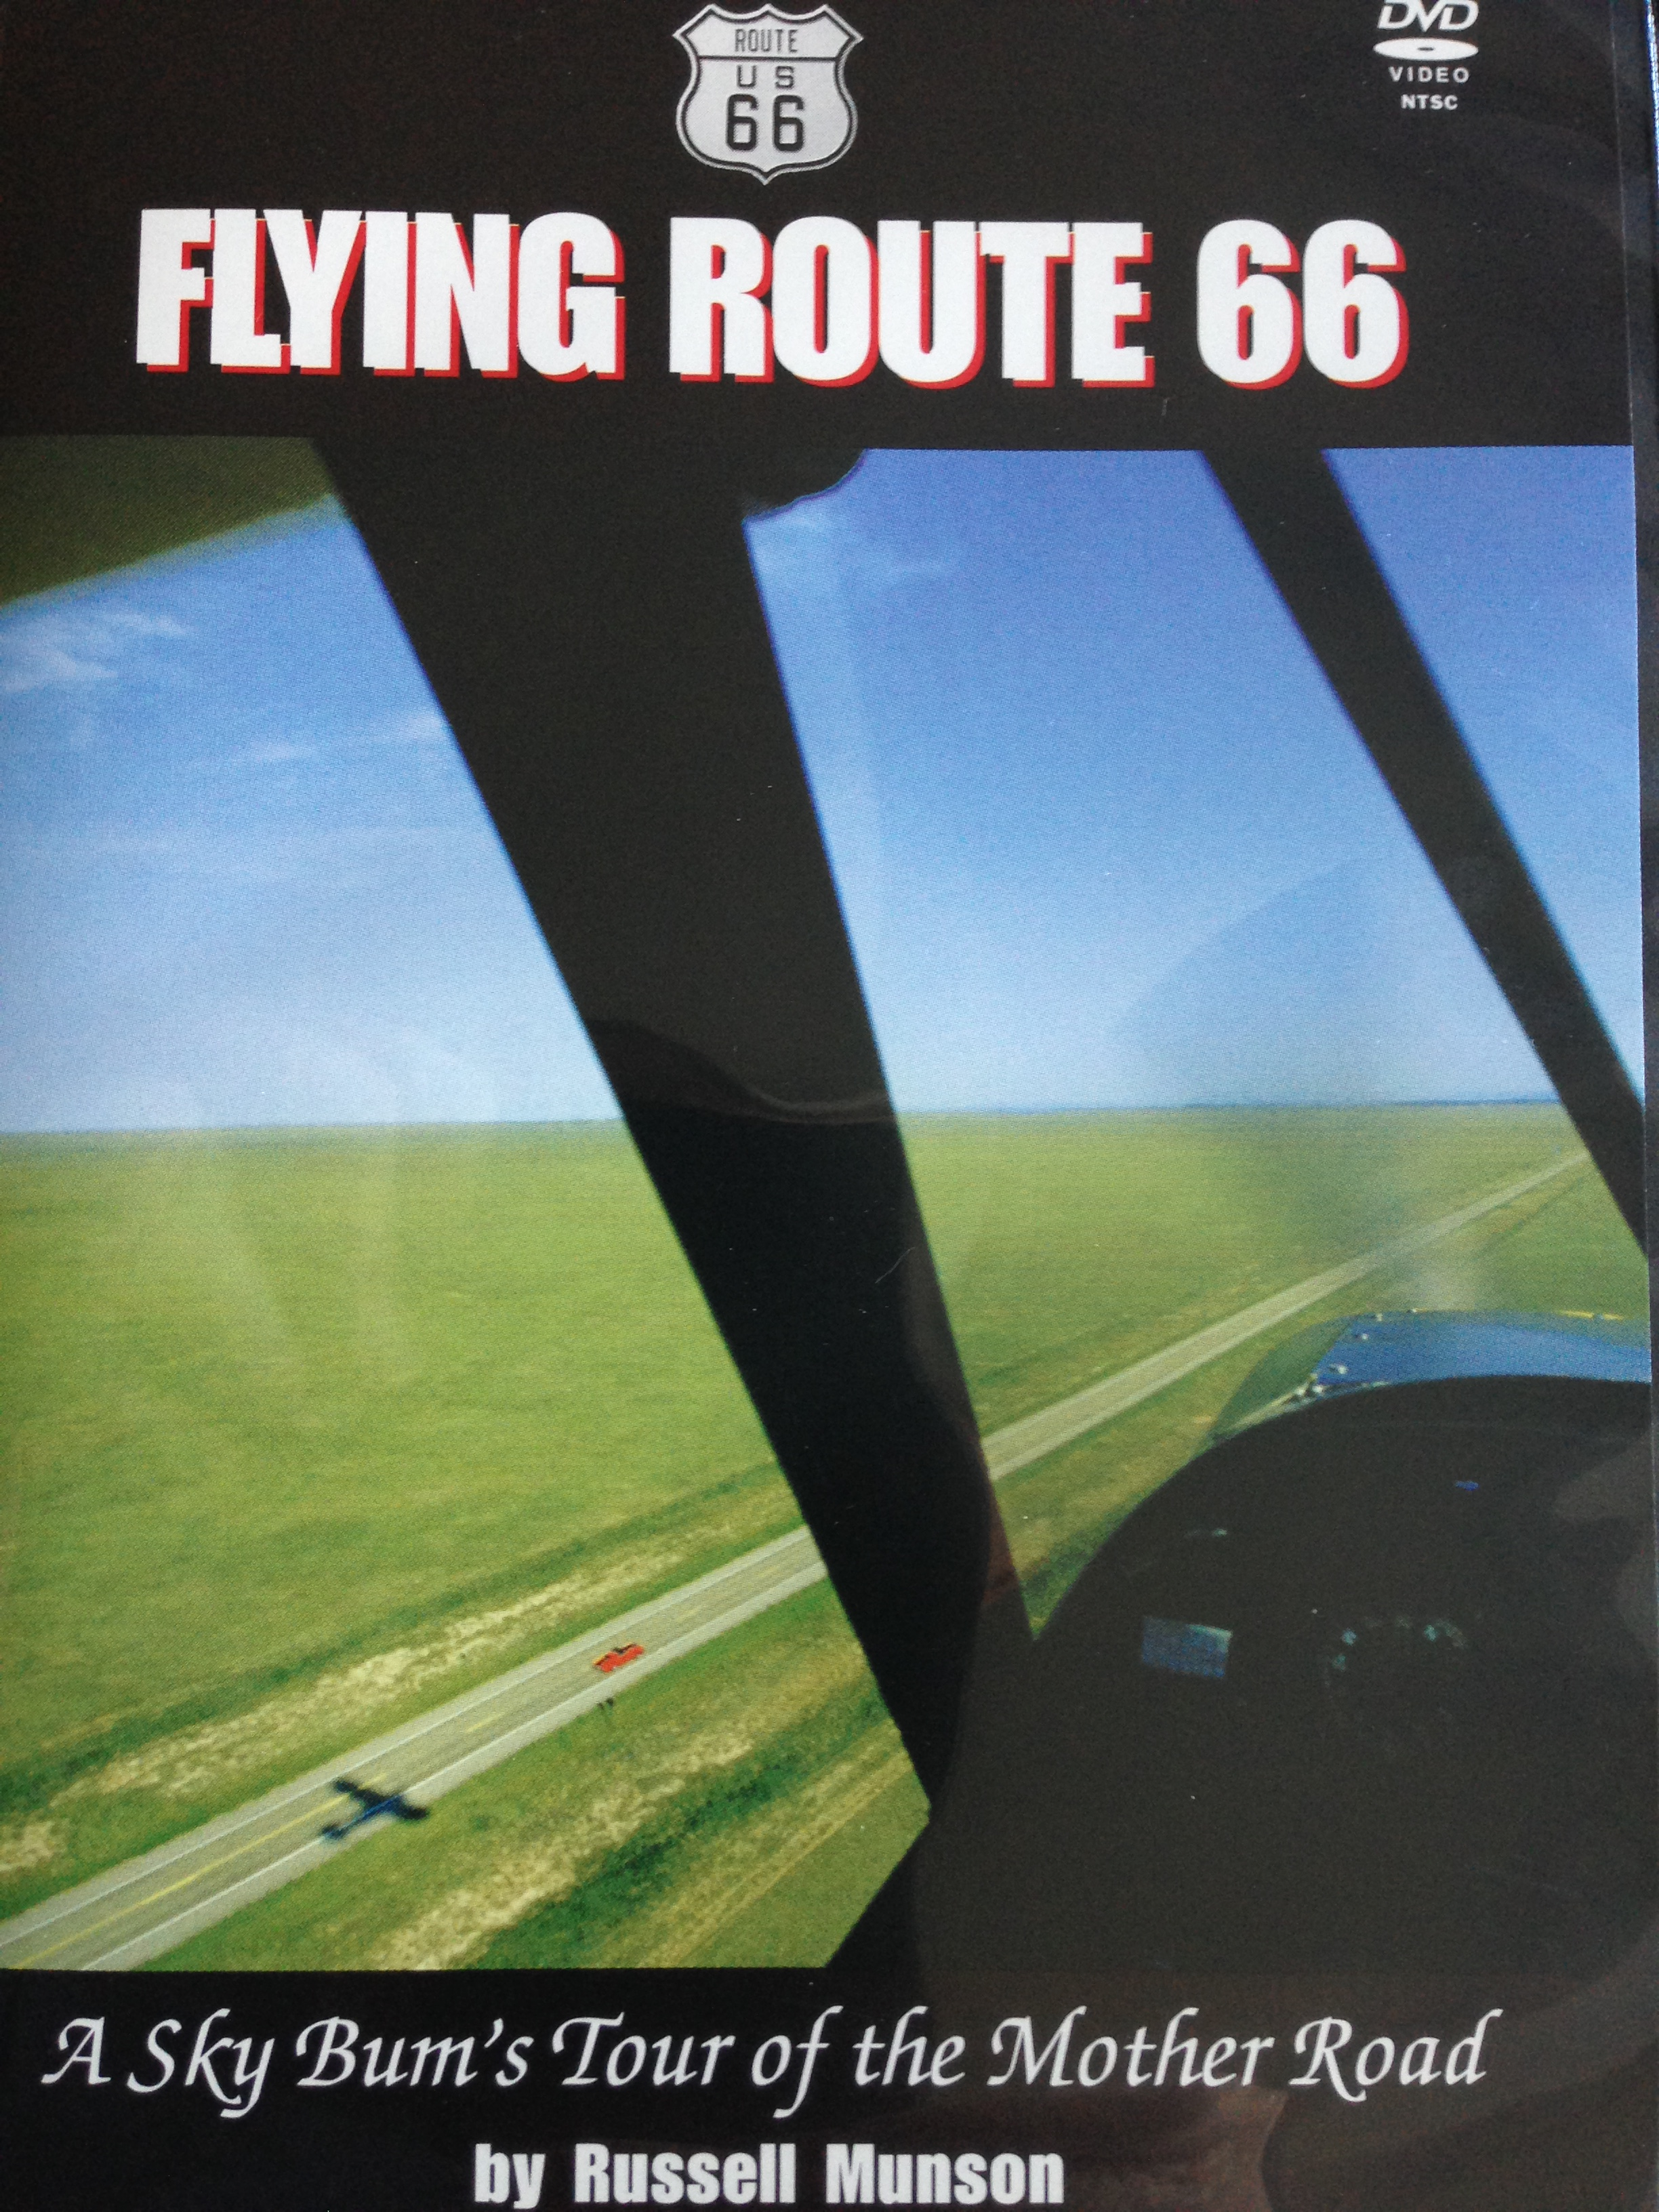 Route 66 by Air